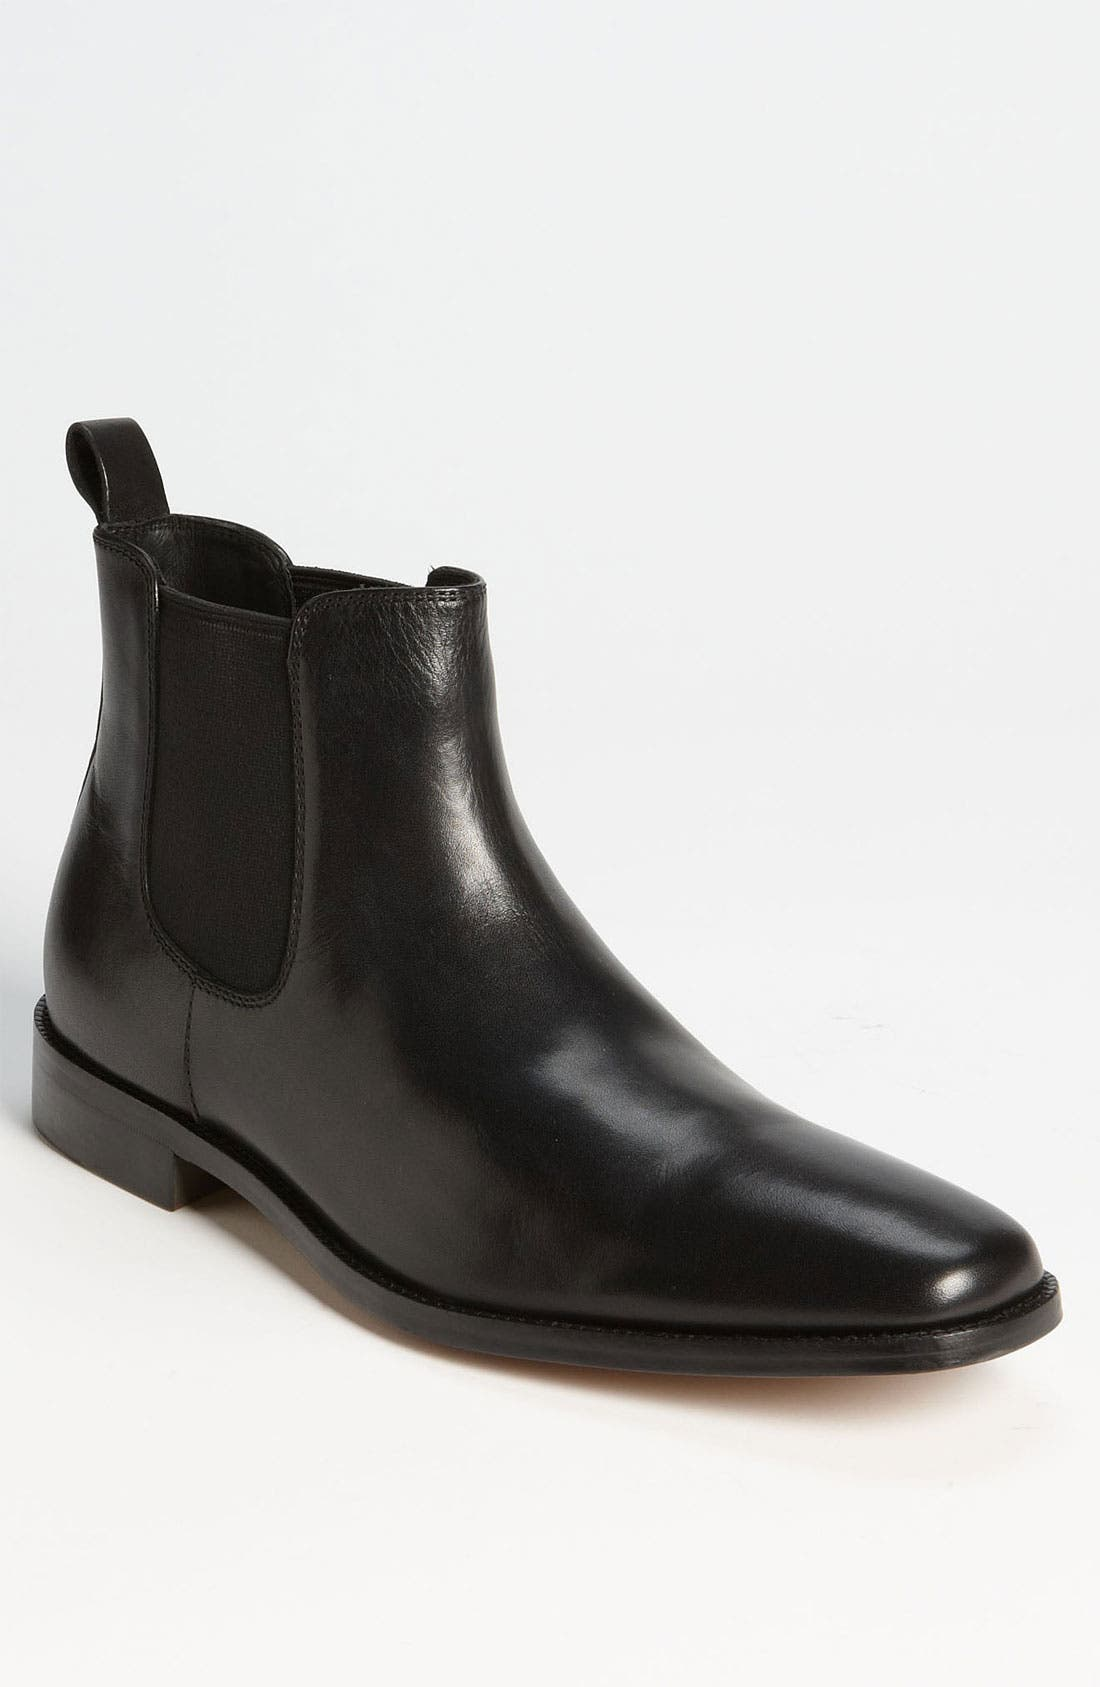 Alternate Image 1 Selected - Gordon Rush 'Hastings' Chelsea Boot